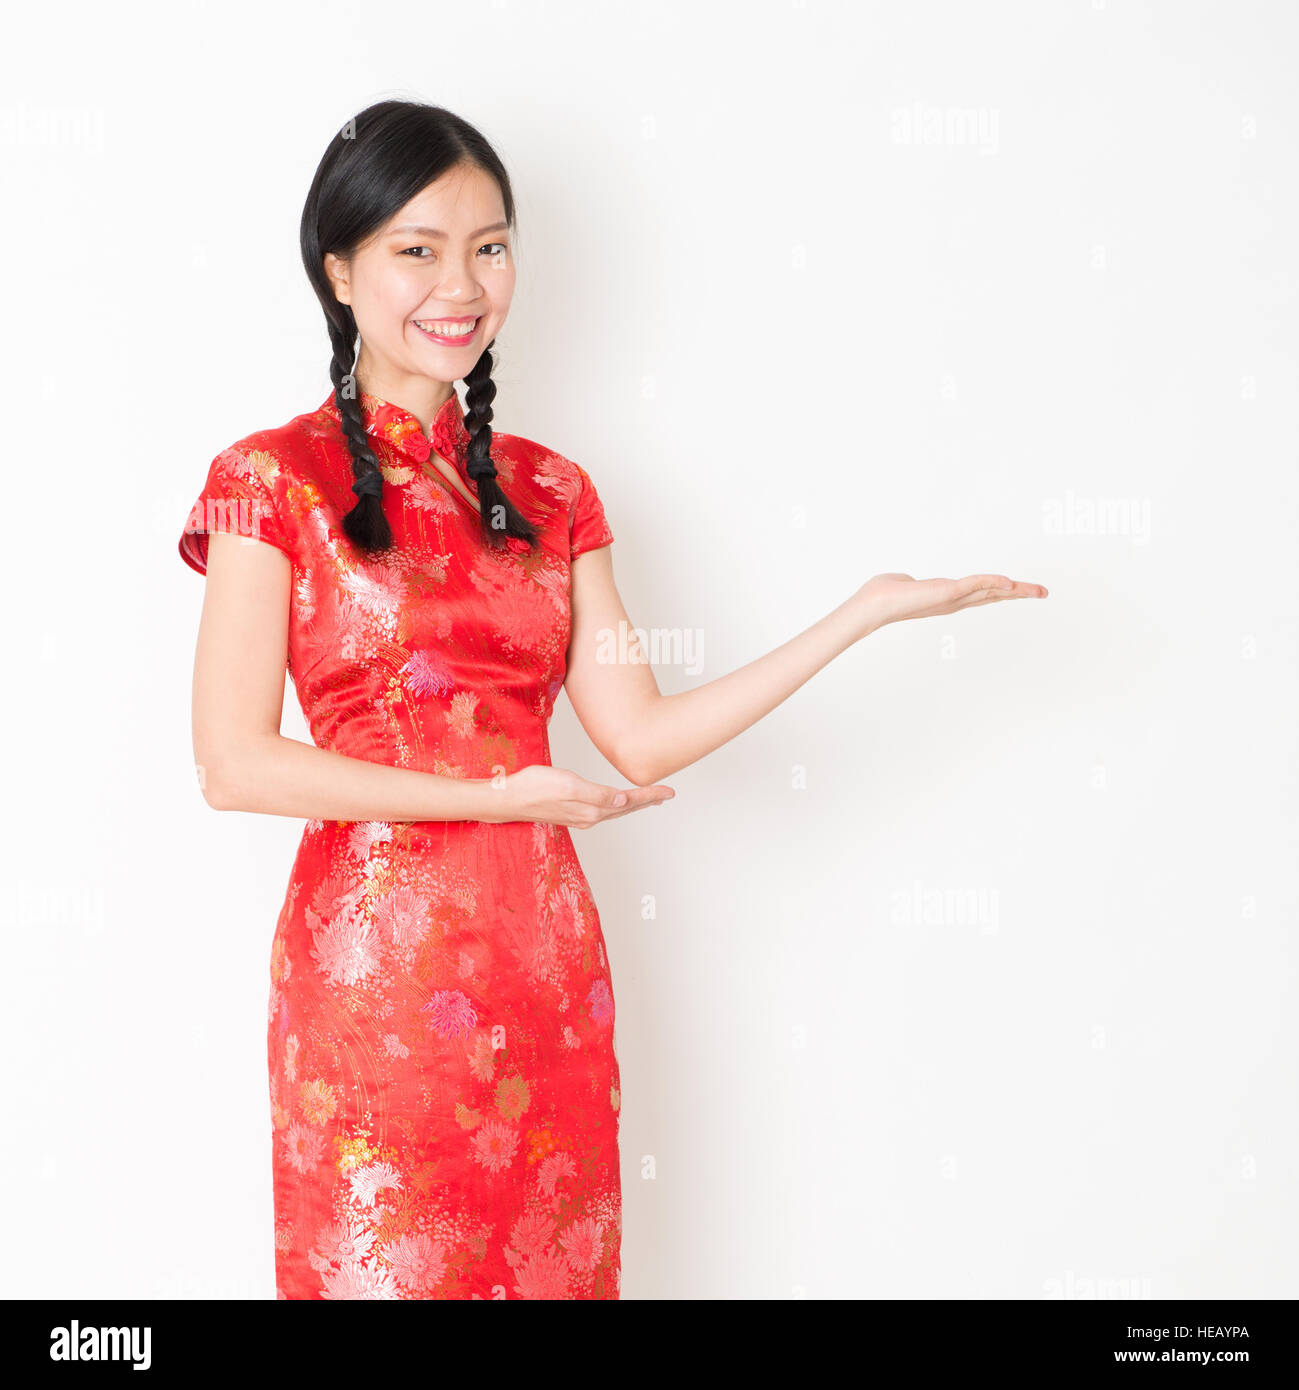 7b1f4151e Portrait of young Asian woman in traditional qipao dress smiling and hand  showing something, celebrating Chinese Lunar New Year or spring festival, st